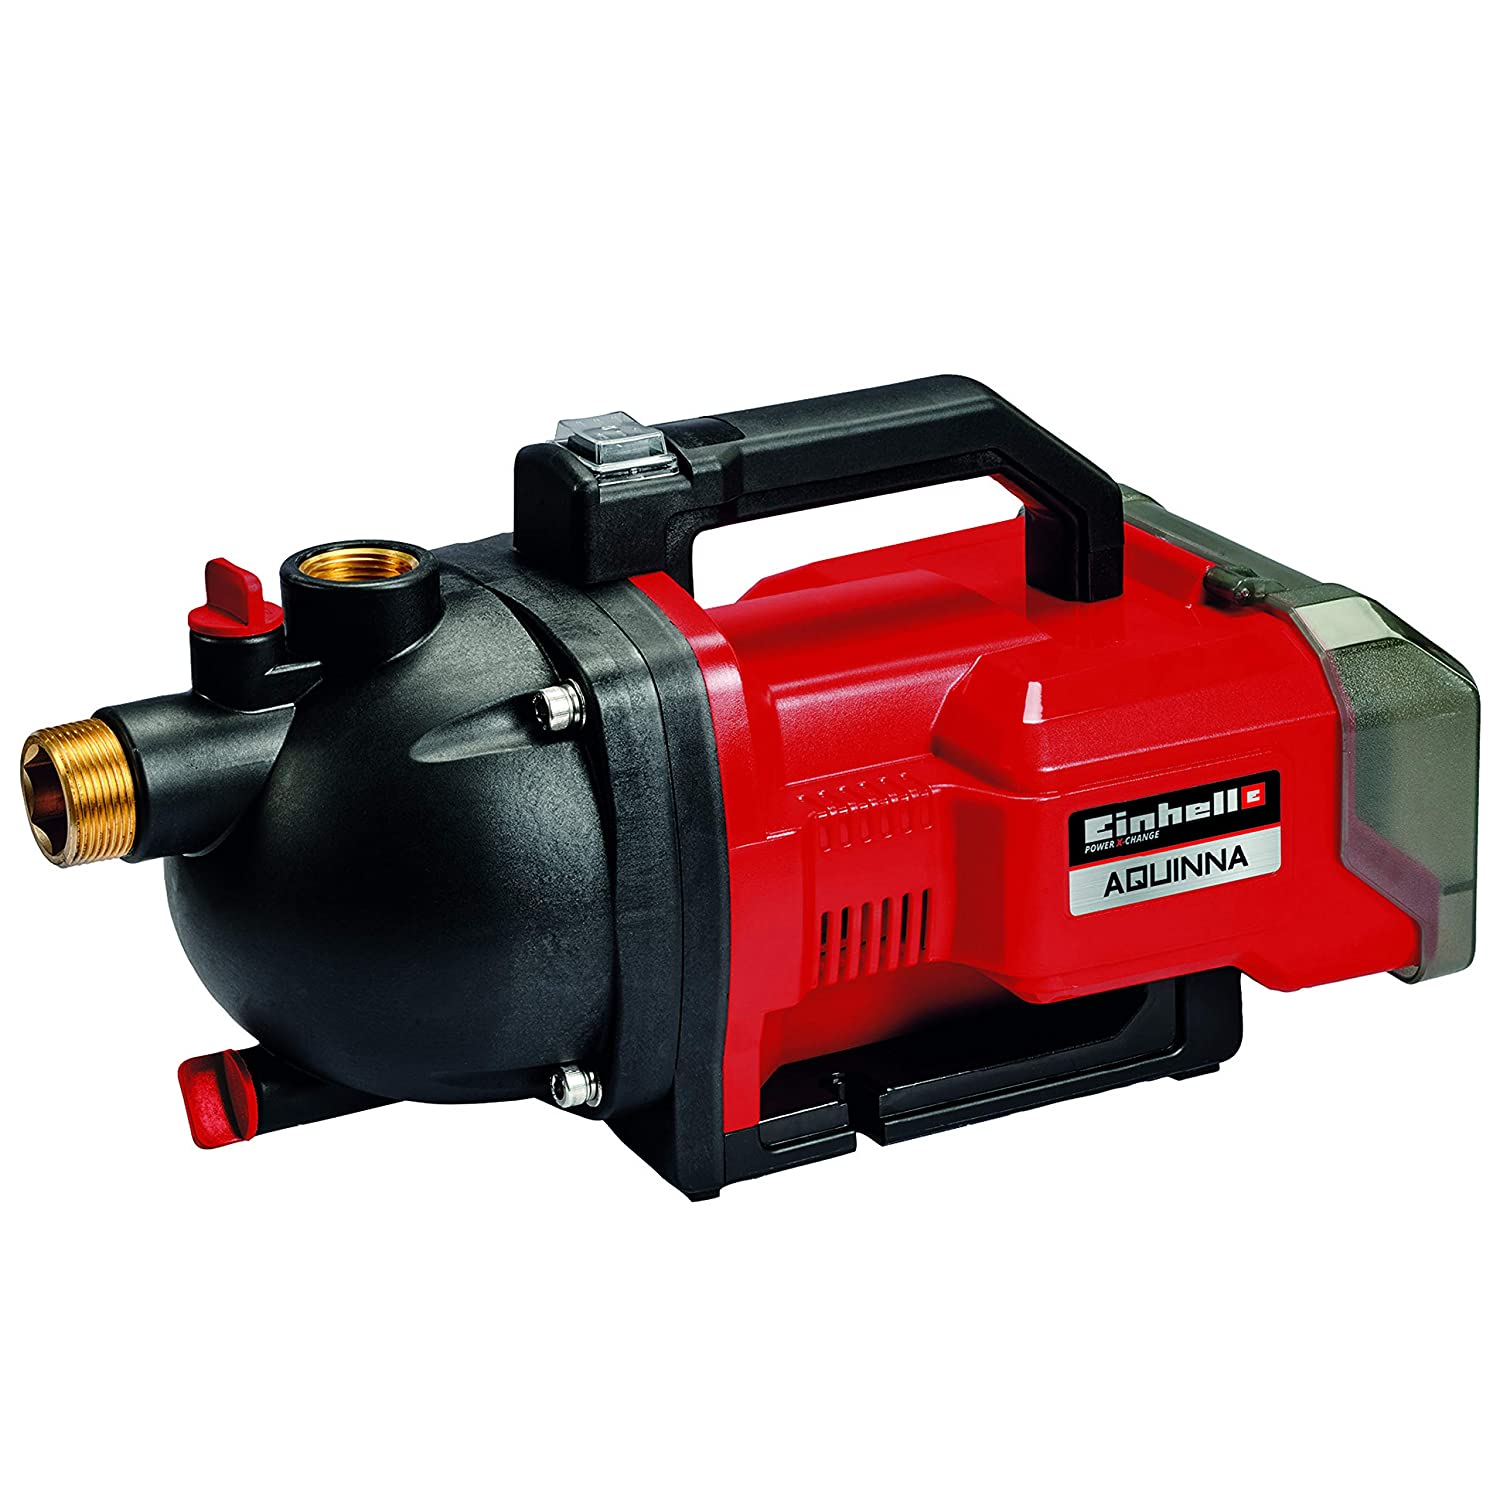 Einhell Aquinna Power X-Change 36-Volt OFFicial Genuine Free Shipping mail order Cordless 13.2 Gal Ma Min